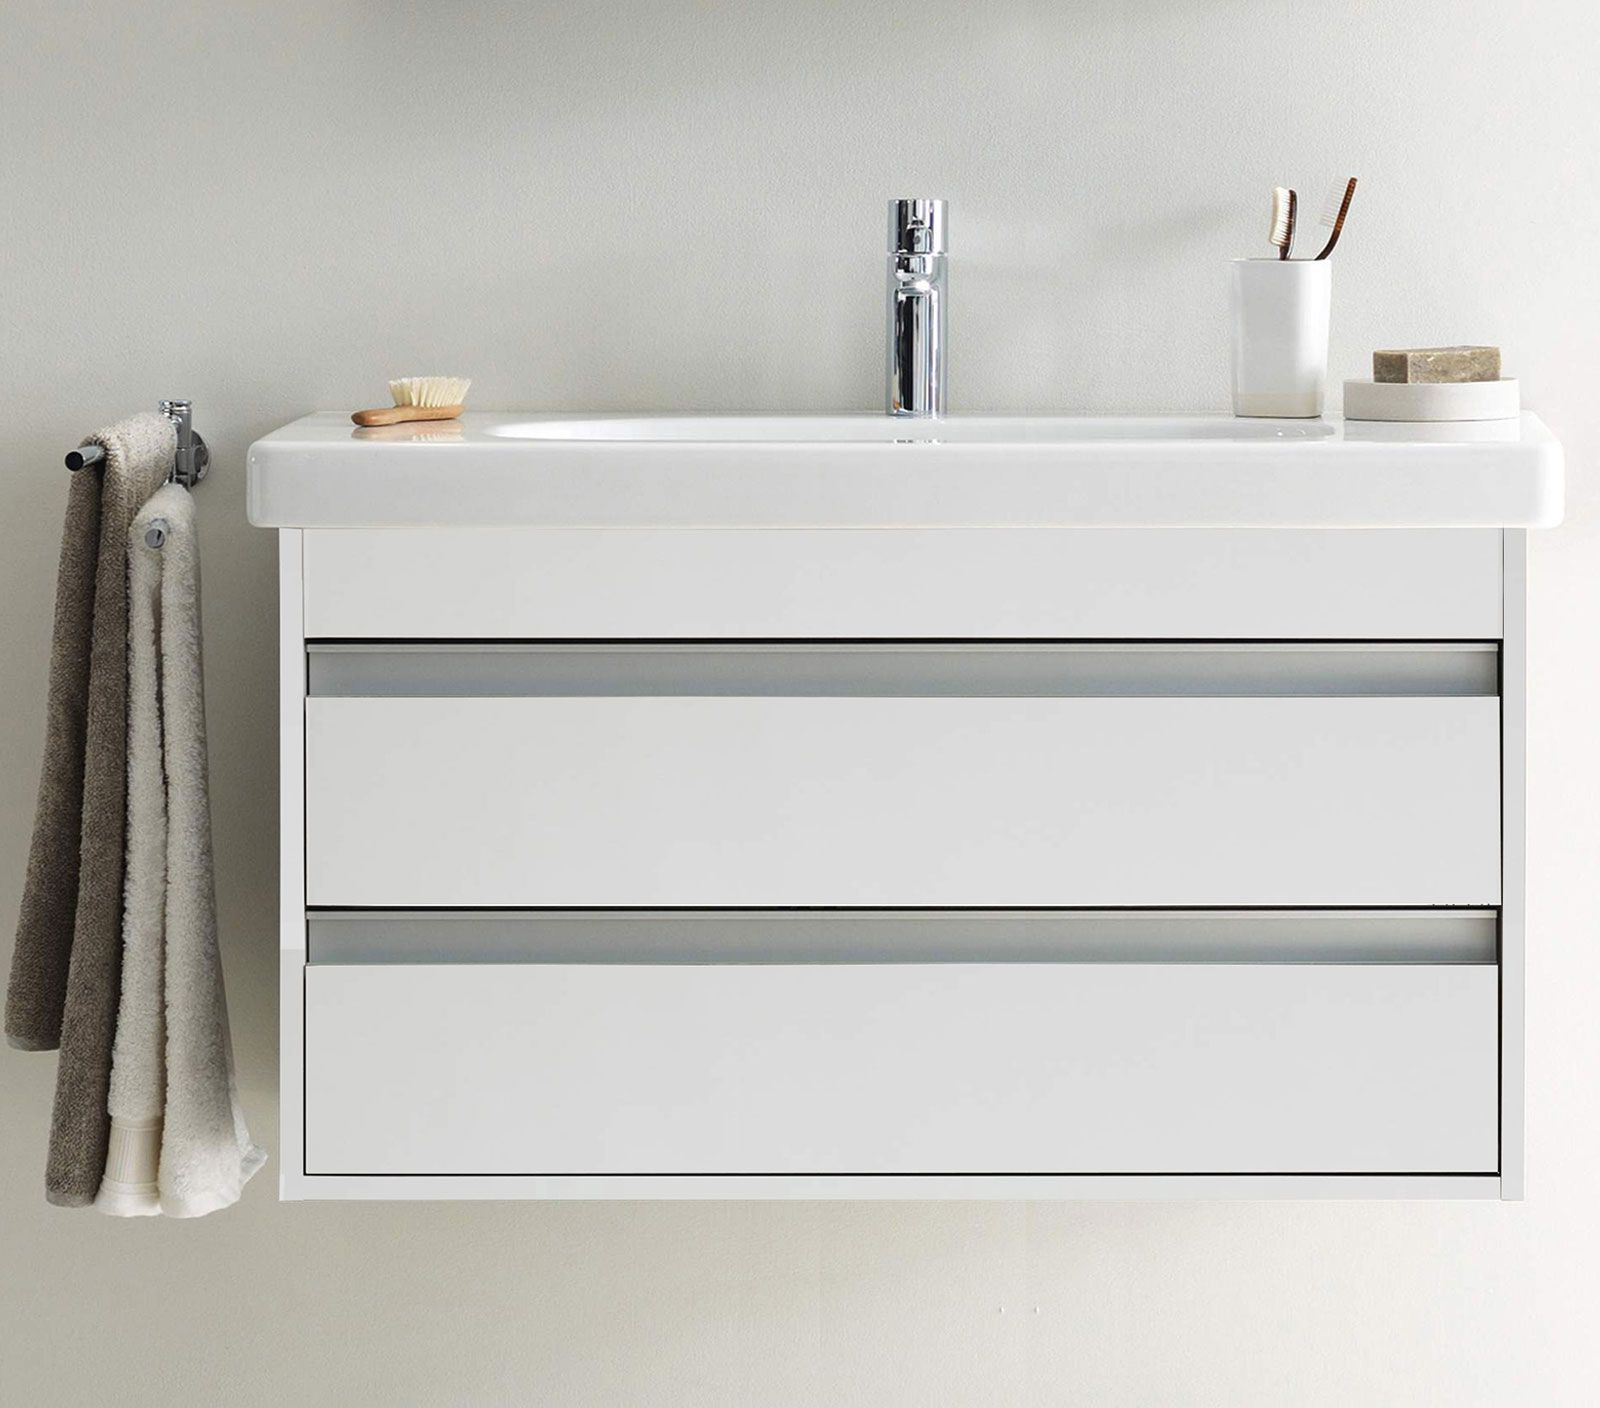 drawer amazon com and bathroom white abbey vanity drawers rectangular soft dp close includes doors inch carrara ceramic sink